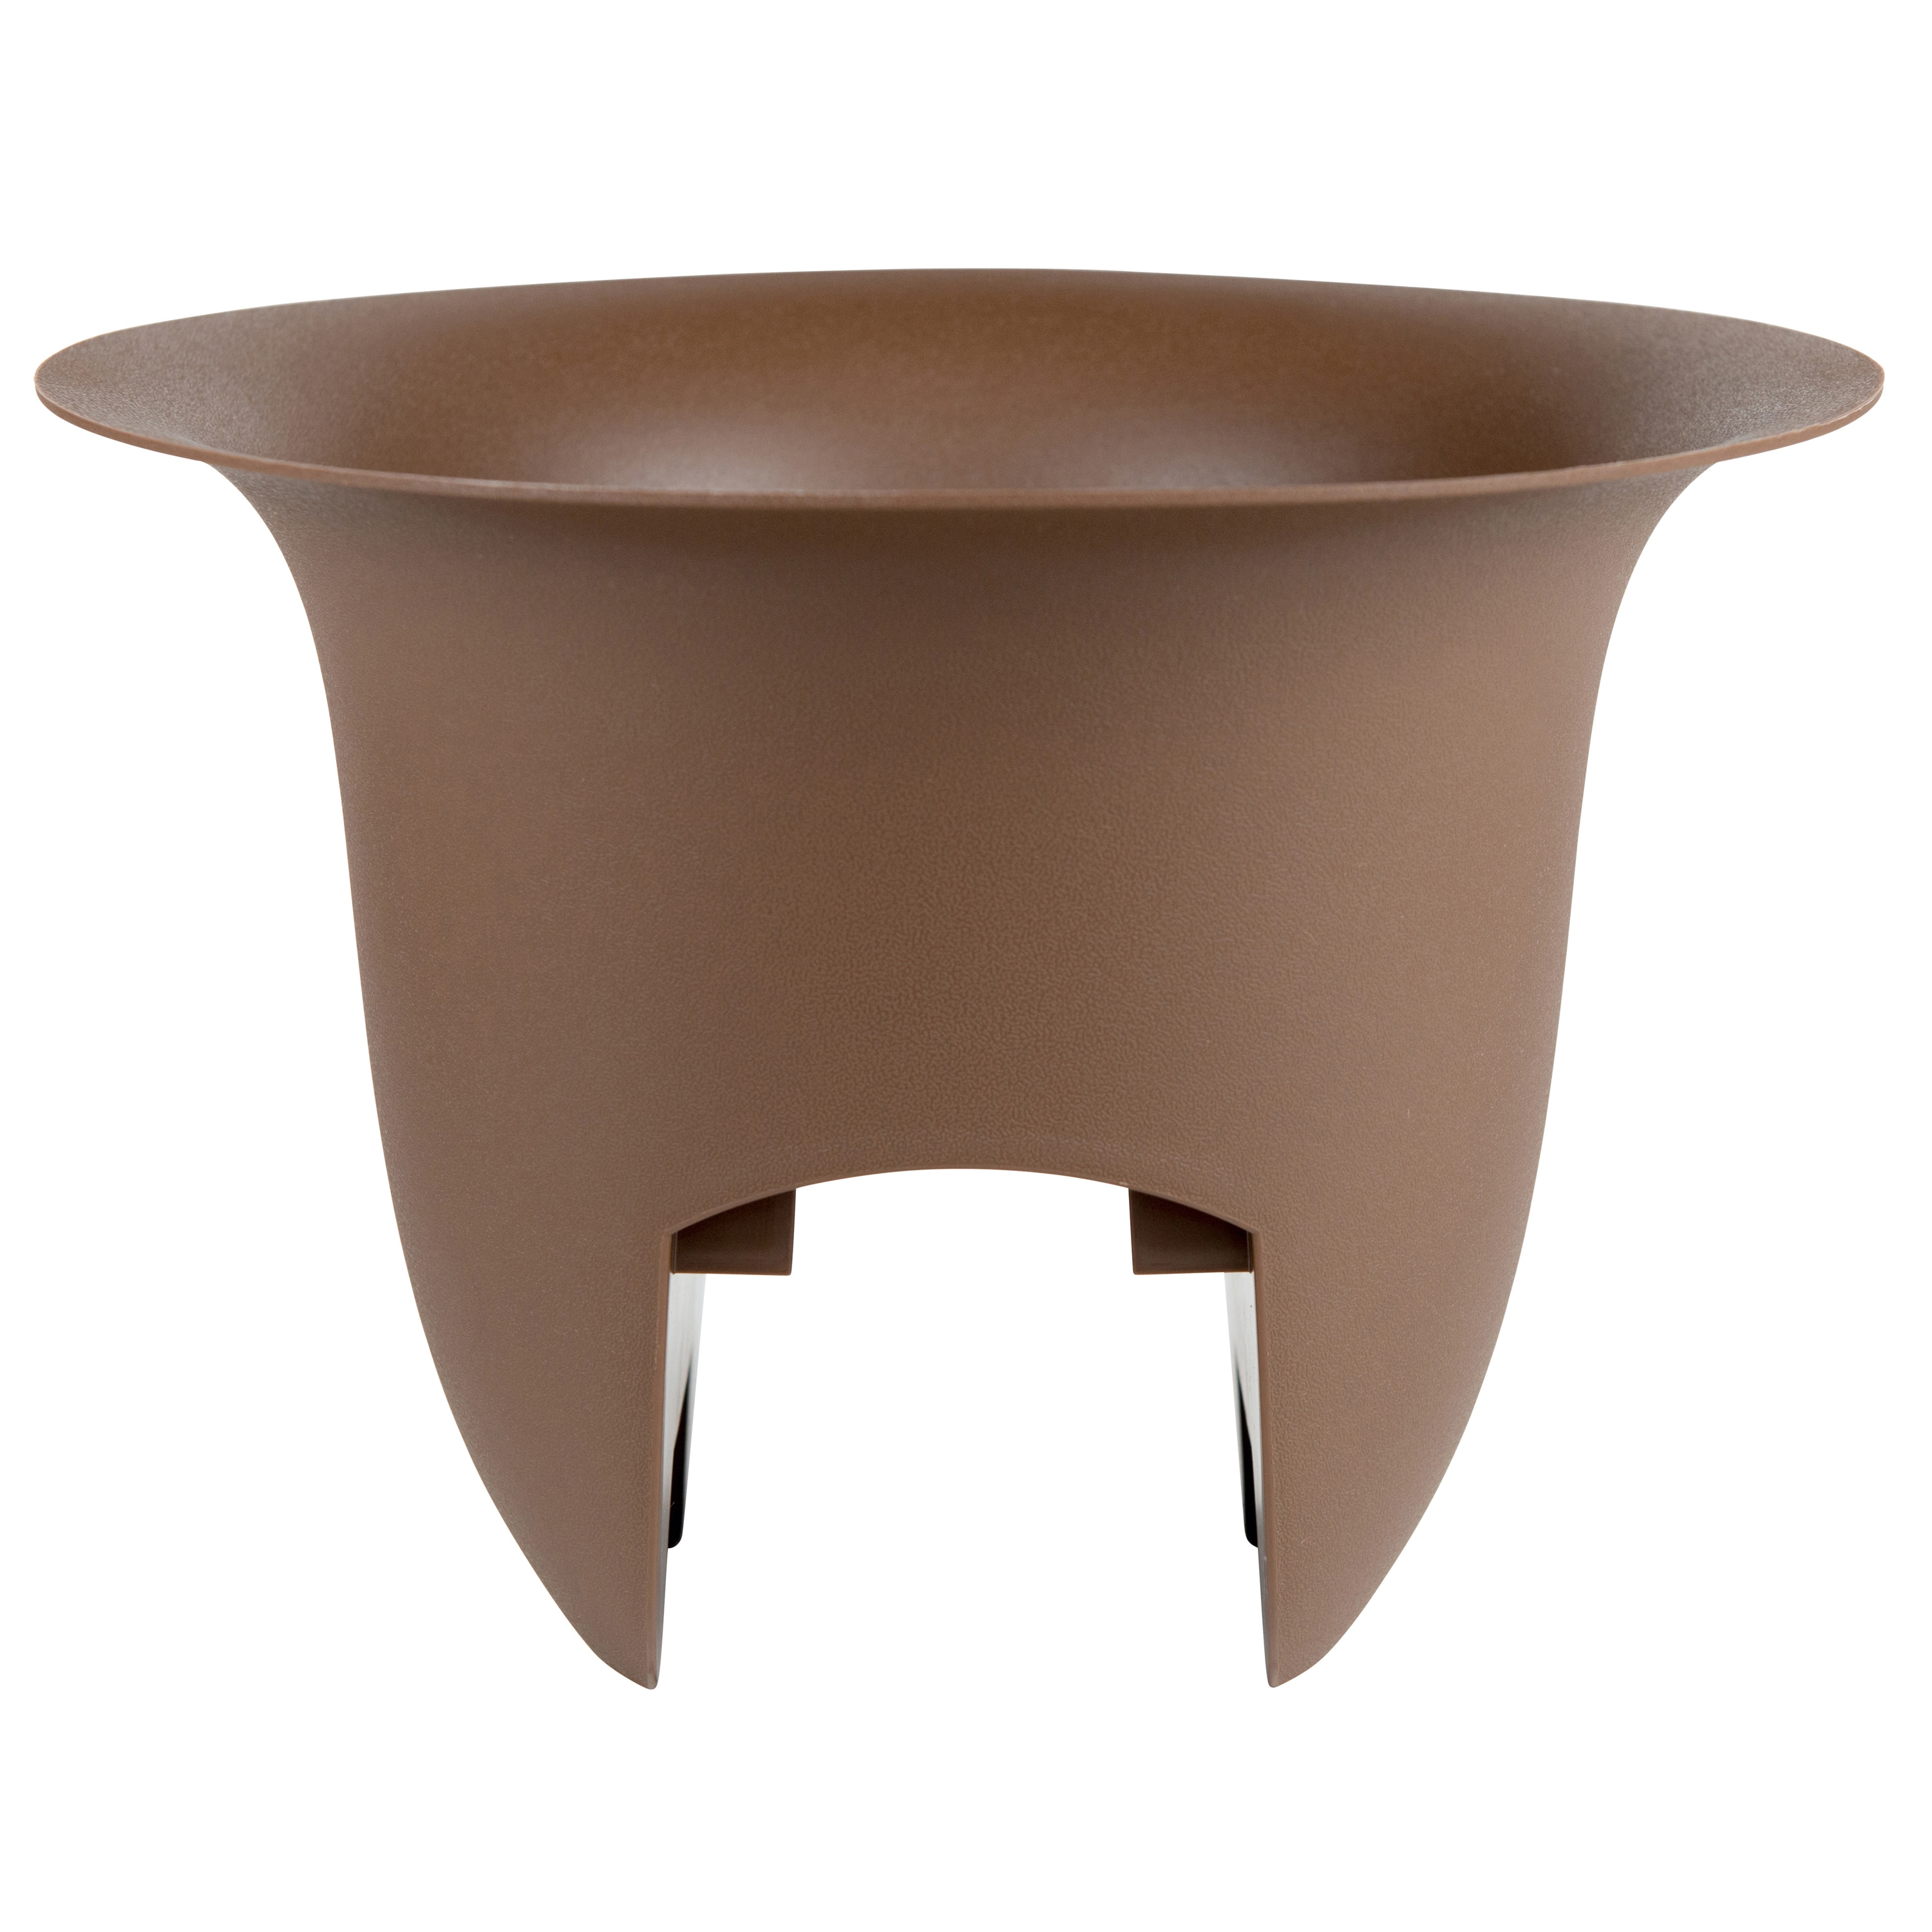 Bloem Modica 18-inch Chocolate Deck Rail Planter (Bloem M...